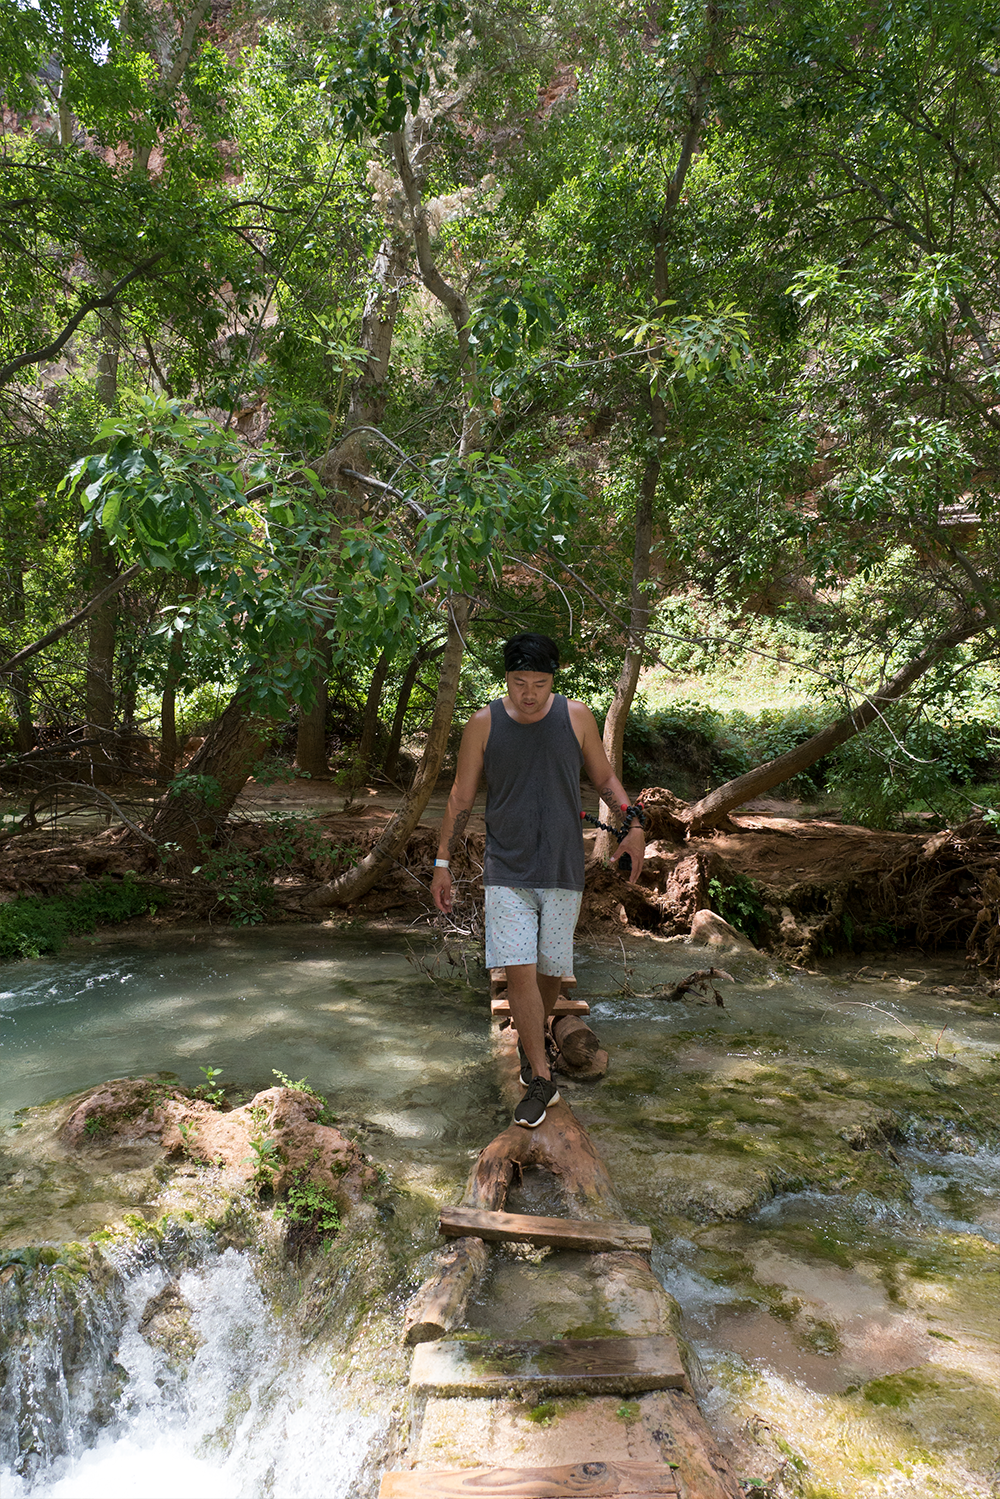 David Vu crossing a small stream in Havasuapi heading to Beaver Falls. Copyright Hobo.Life